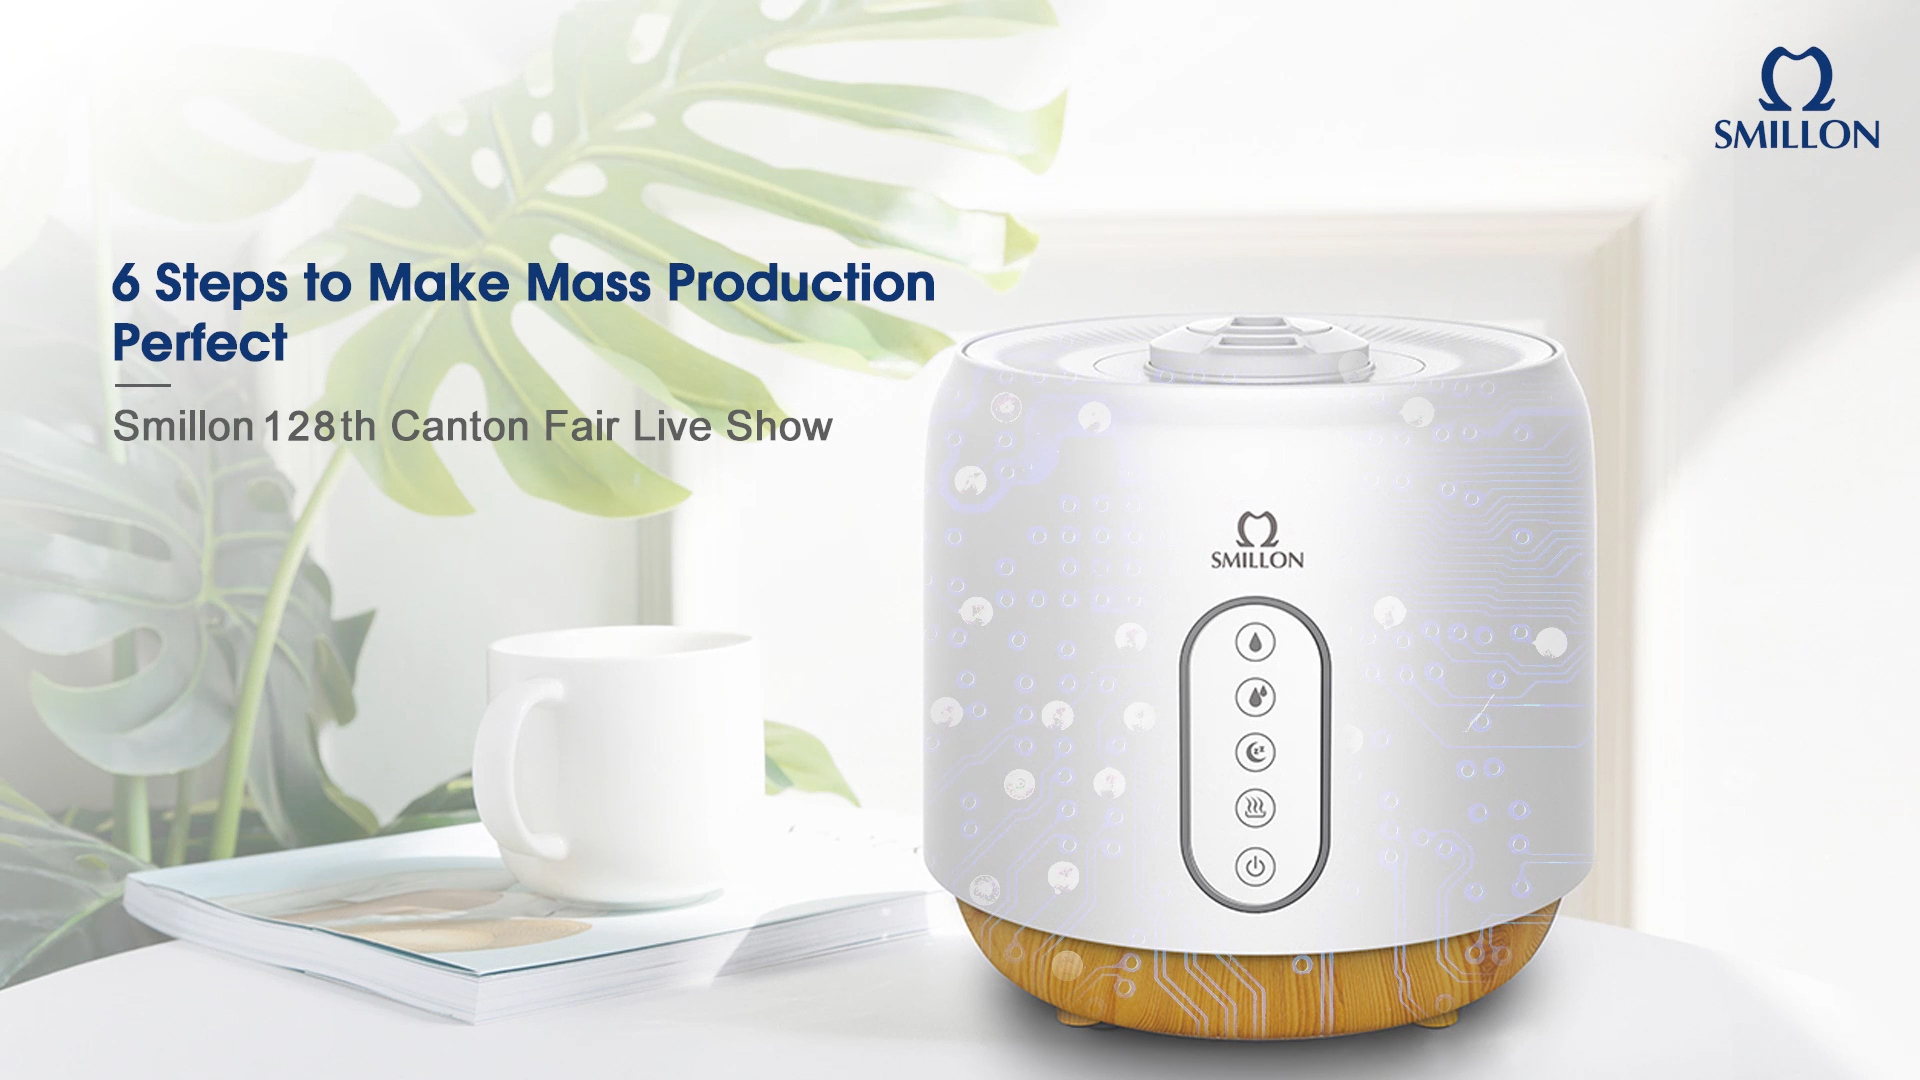 D8 Six Steps to Make Mass Production Perfect | Smillon 128th Canton Fair Live Show